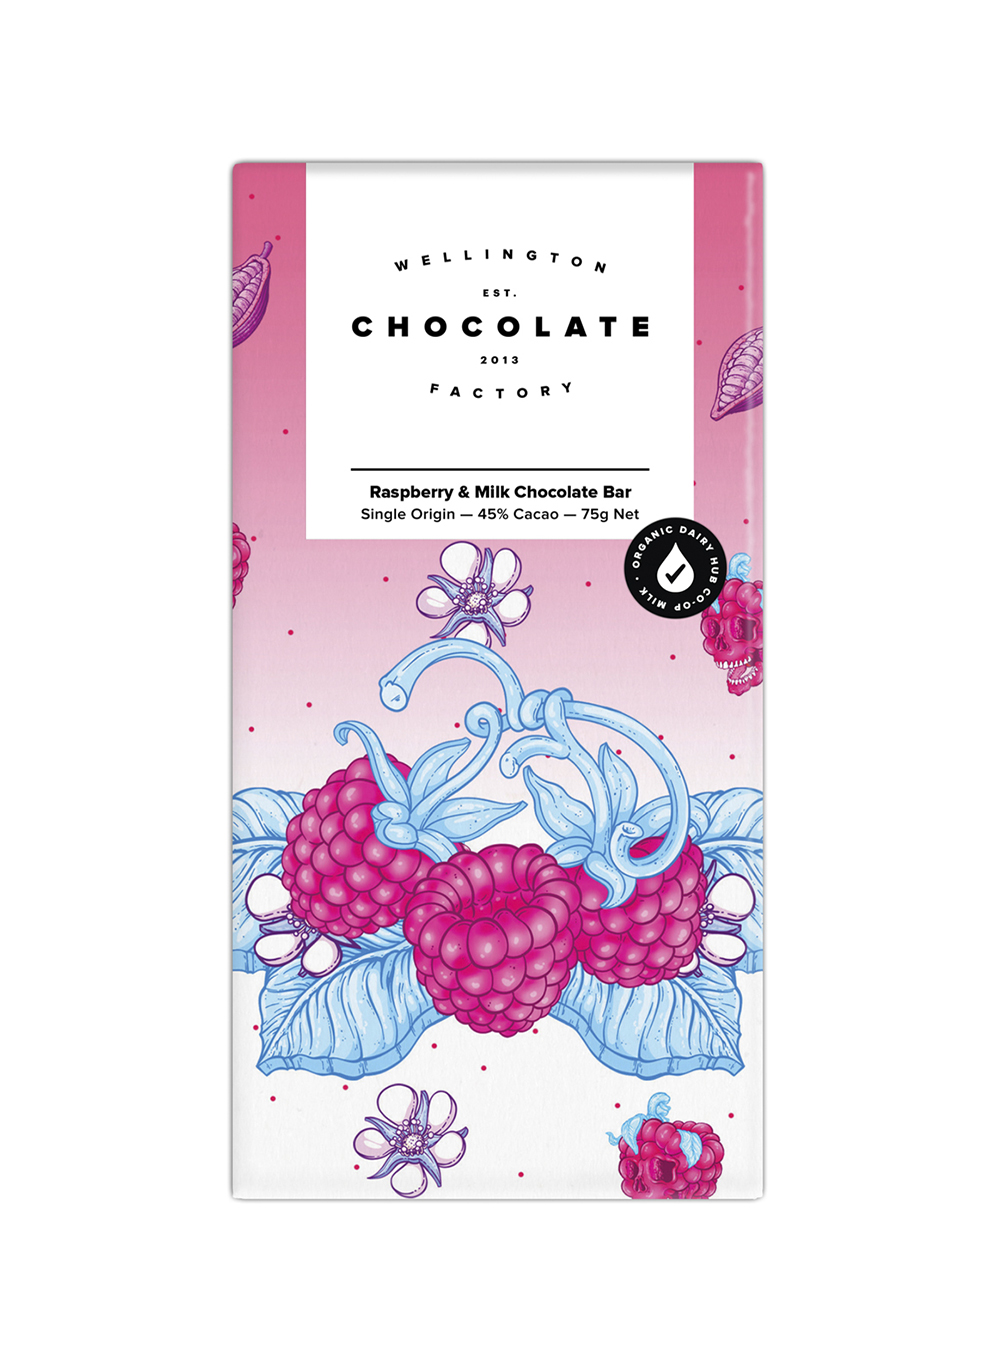 Raspberry Milk Chocolate Bar - Organic single origin milk chocolate infused with real, freeze-dried New Zealand raspberries.